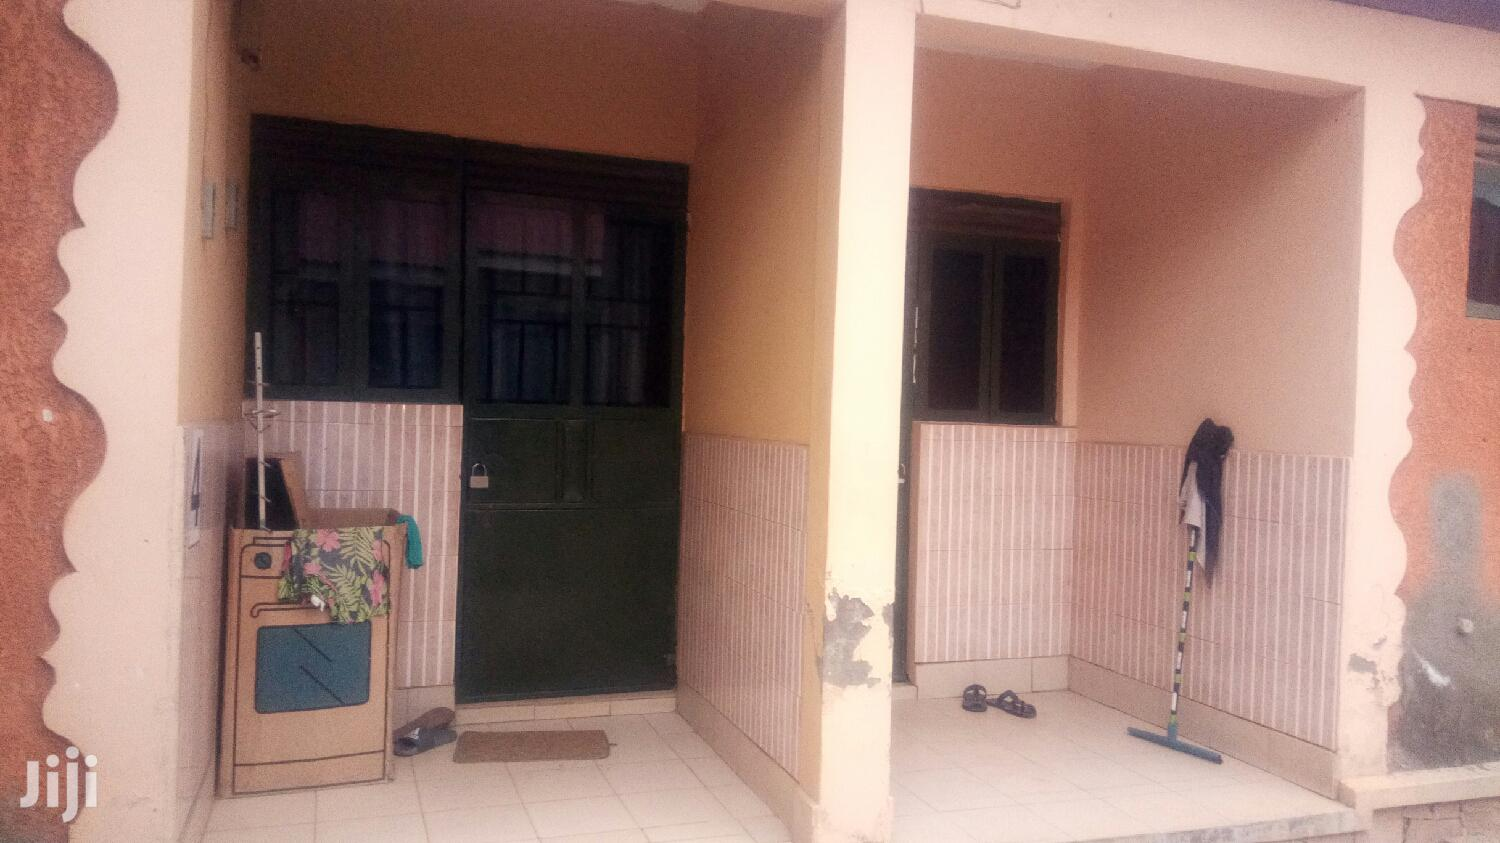 Single Room Self Contained for Rent in Kyaliwajjala | Houses & Apartments For Rent for sale in Kampala, Central Region, Uganda